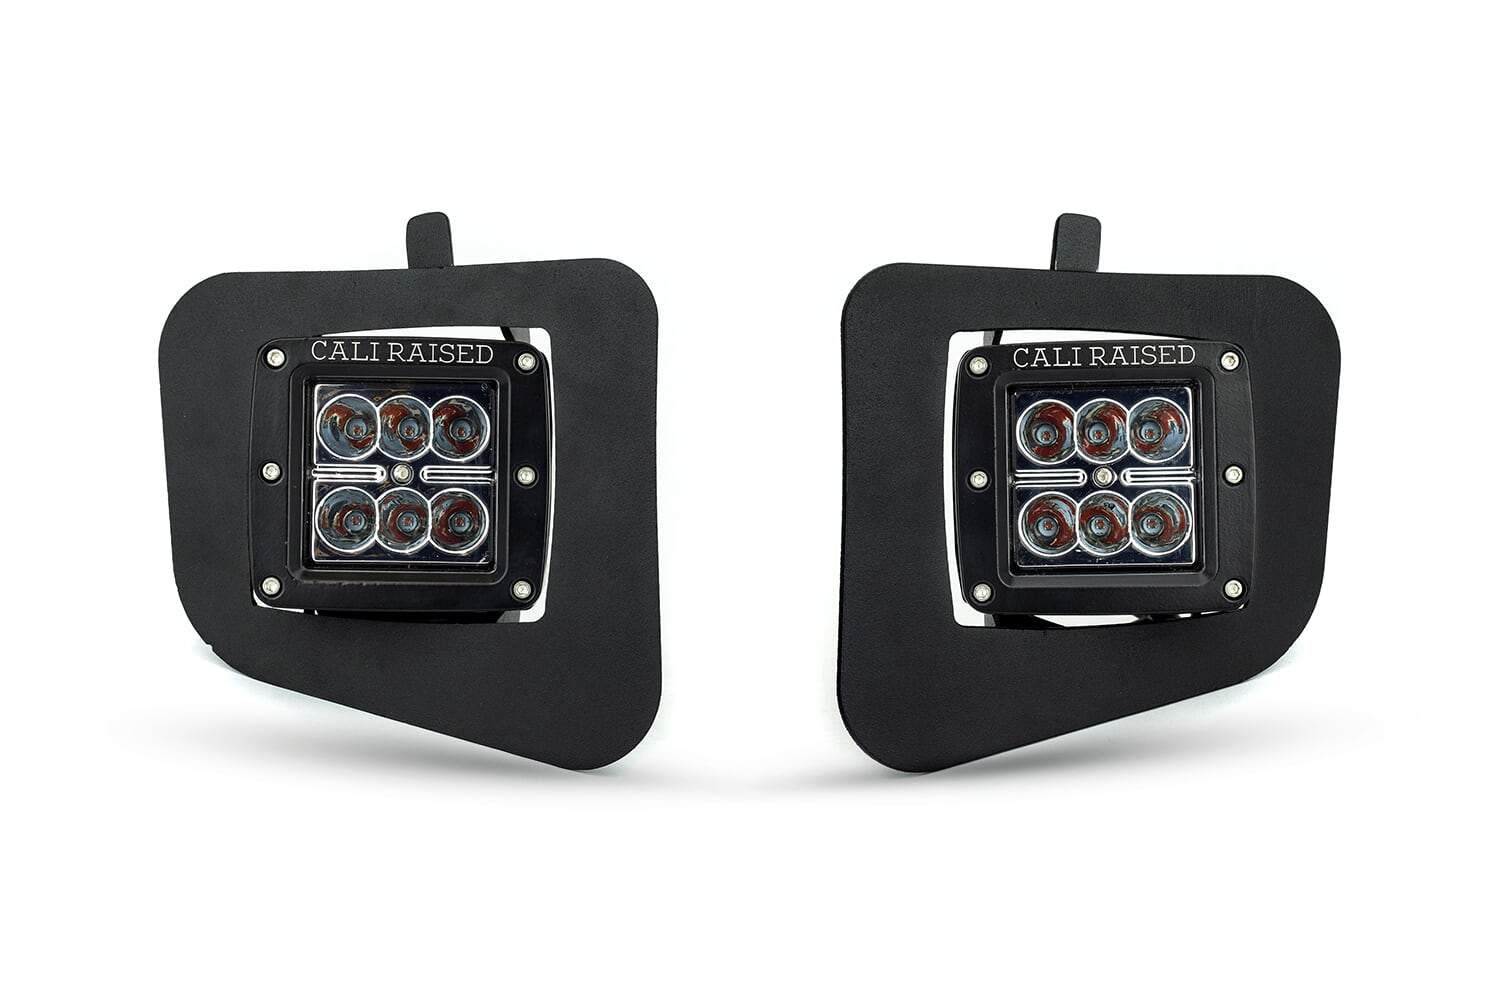 Cali Raised Toyota Tundra LED Fog Light Pod Replacements Combo 2014+